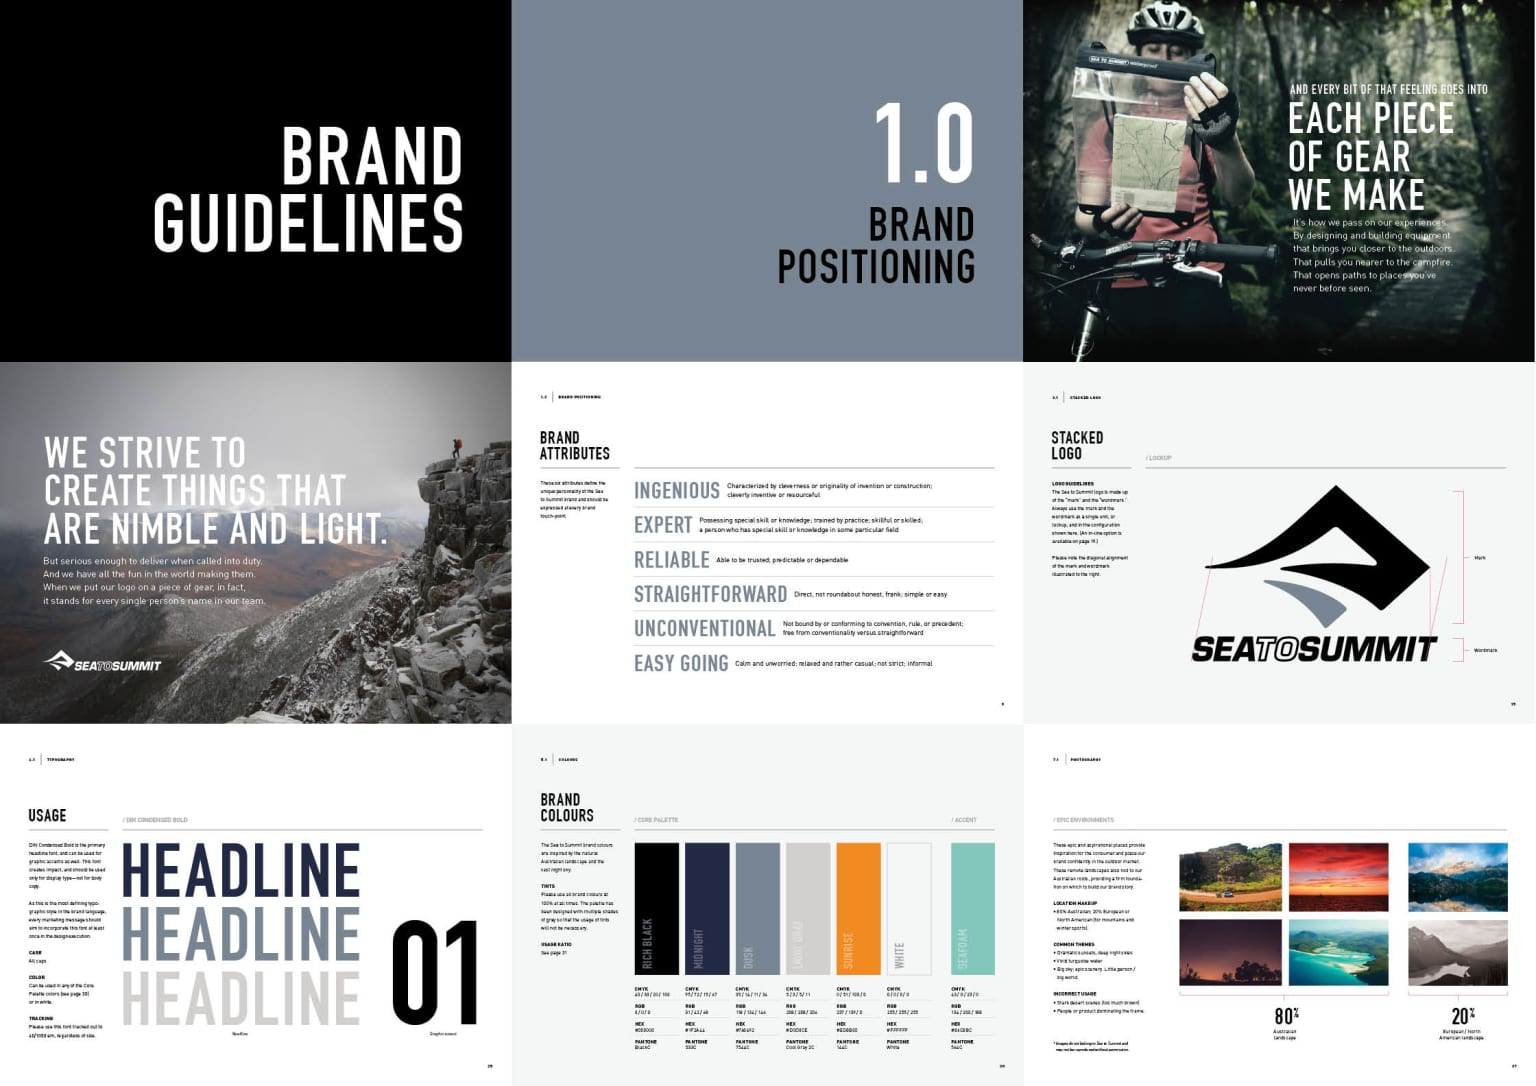 Sea to Summit Brand Guidelines